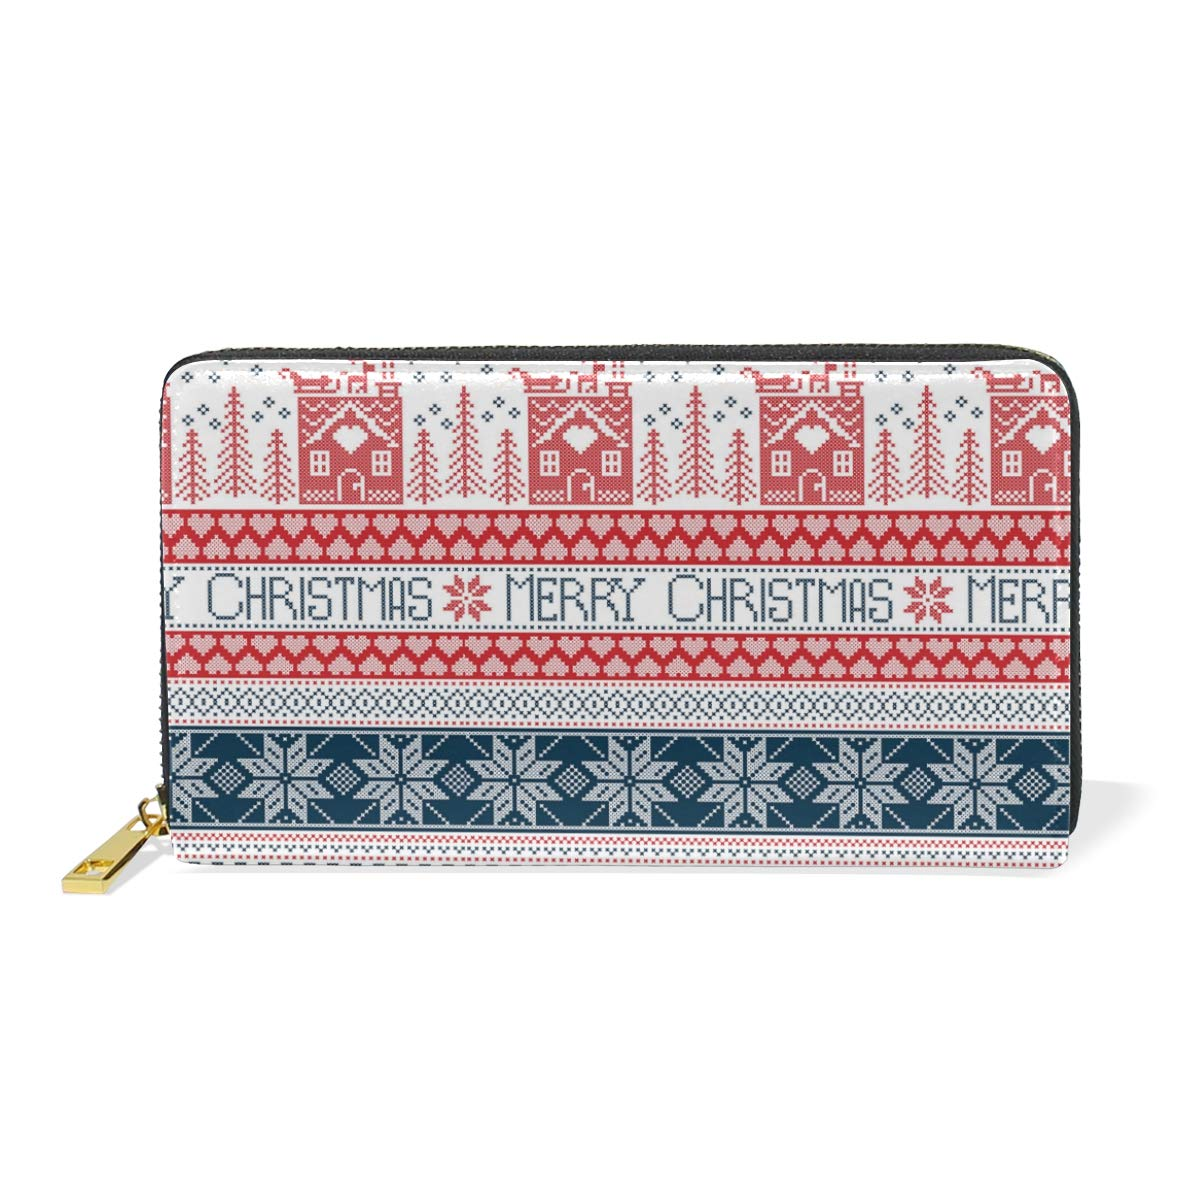 Cable Knit Christmas Stockings Real Leather Zip Around Wallet Wristlet minimalist wallet Travel Purse Wristlet